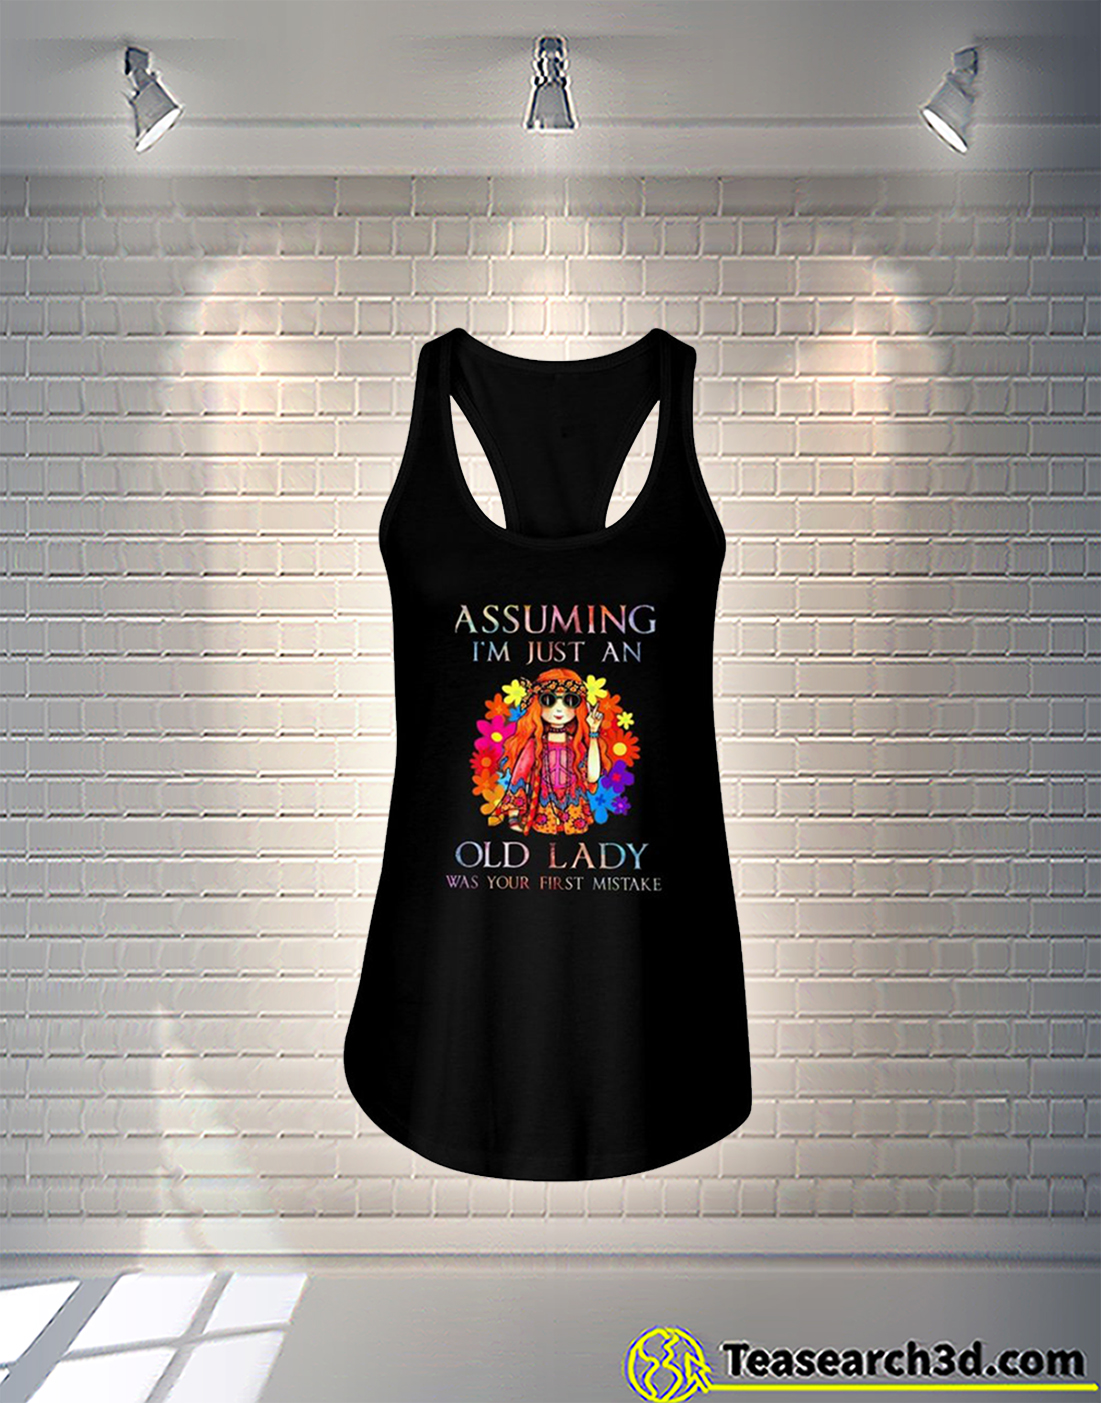 Hippie girl assuming I'm just an old lady was your first mistake flowy tank